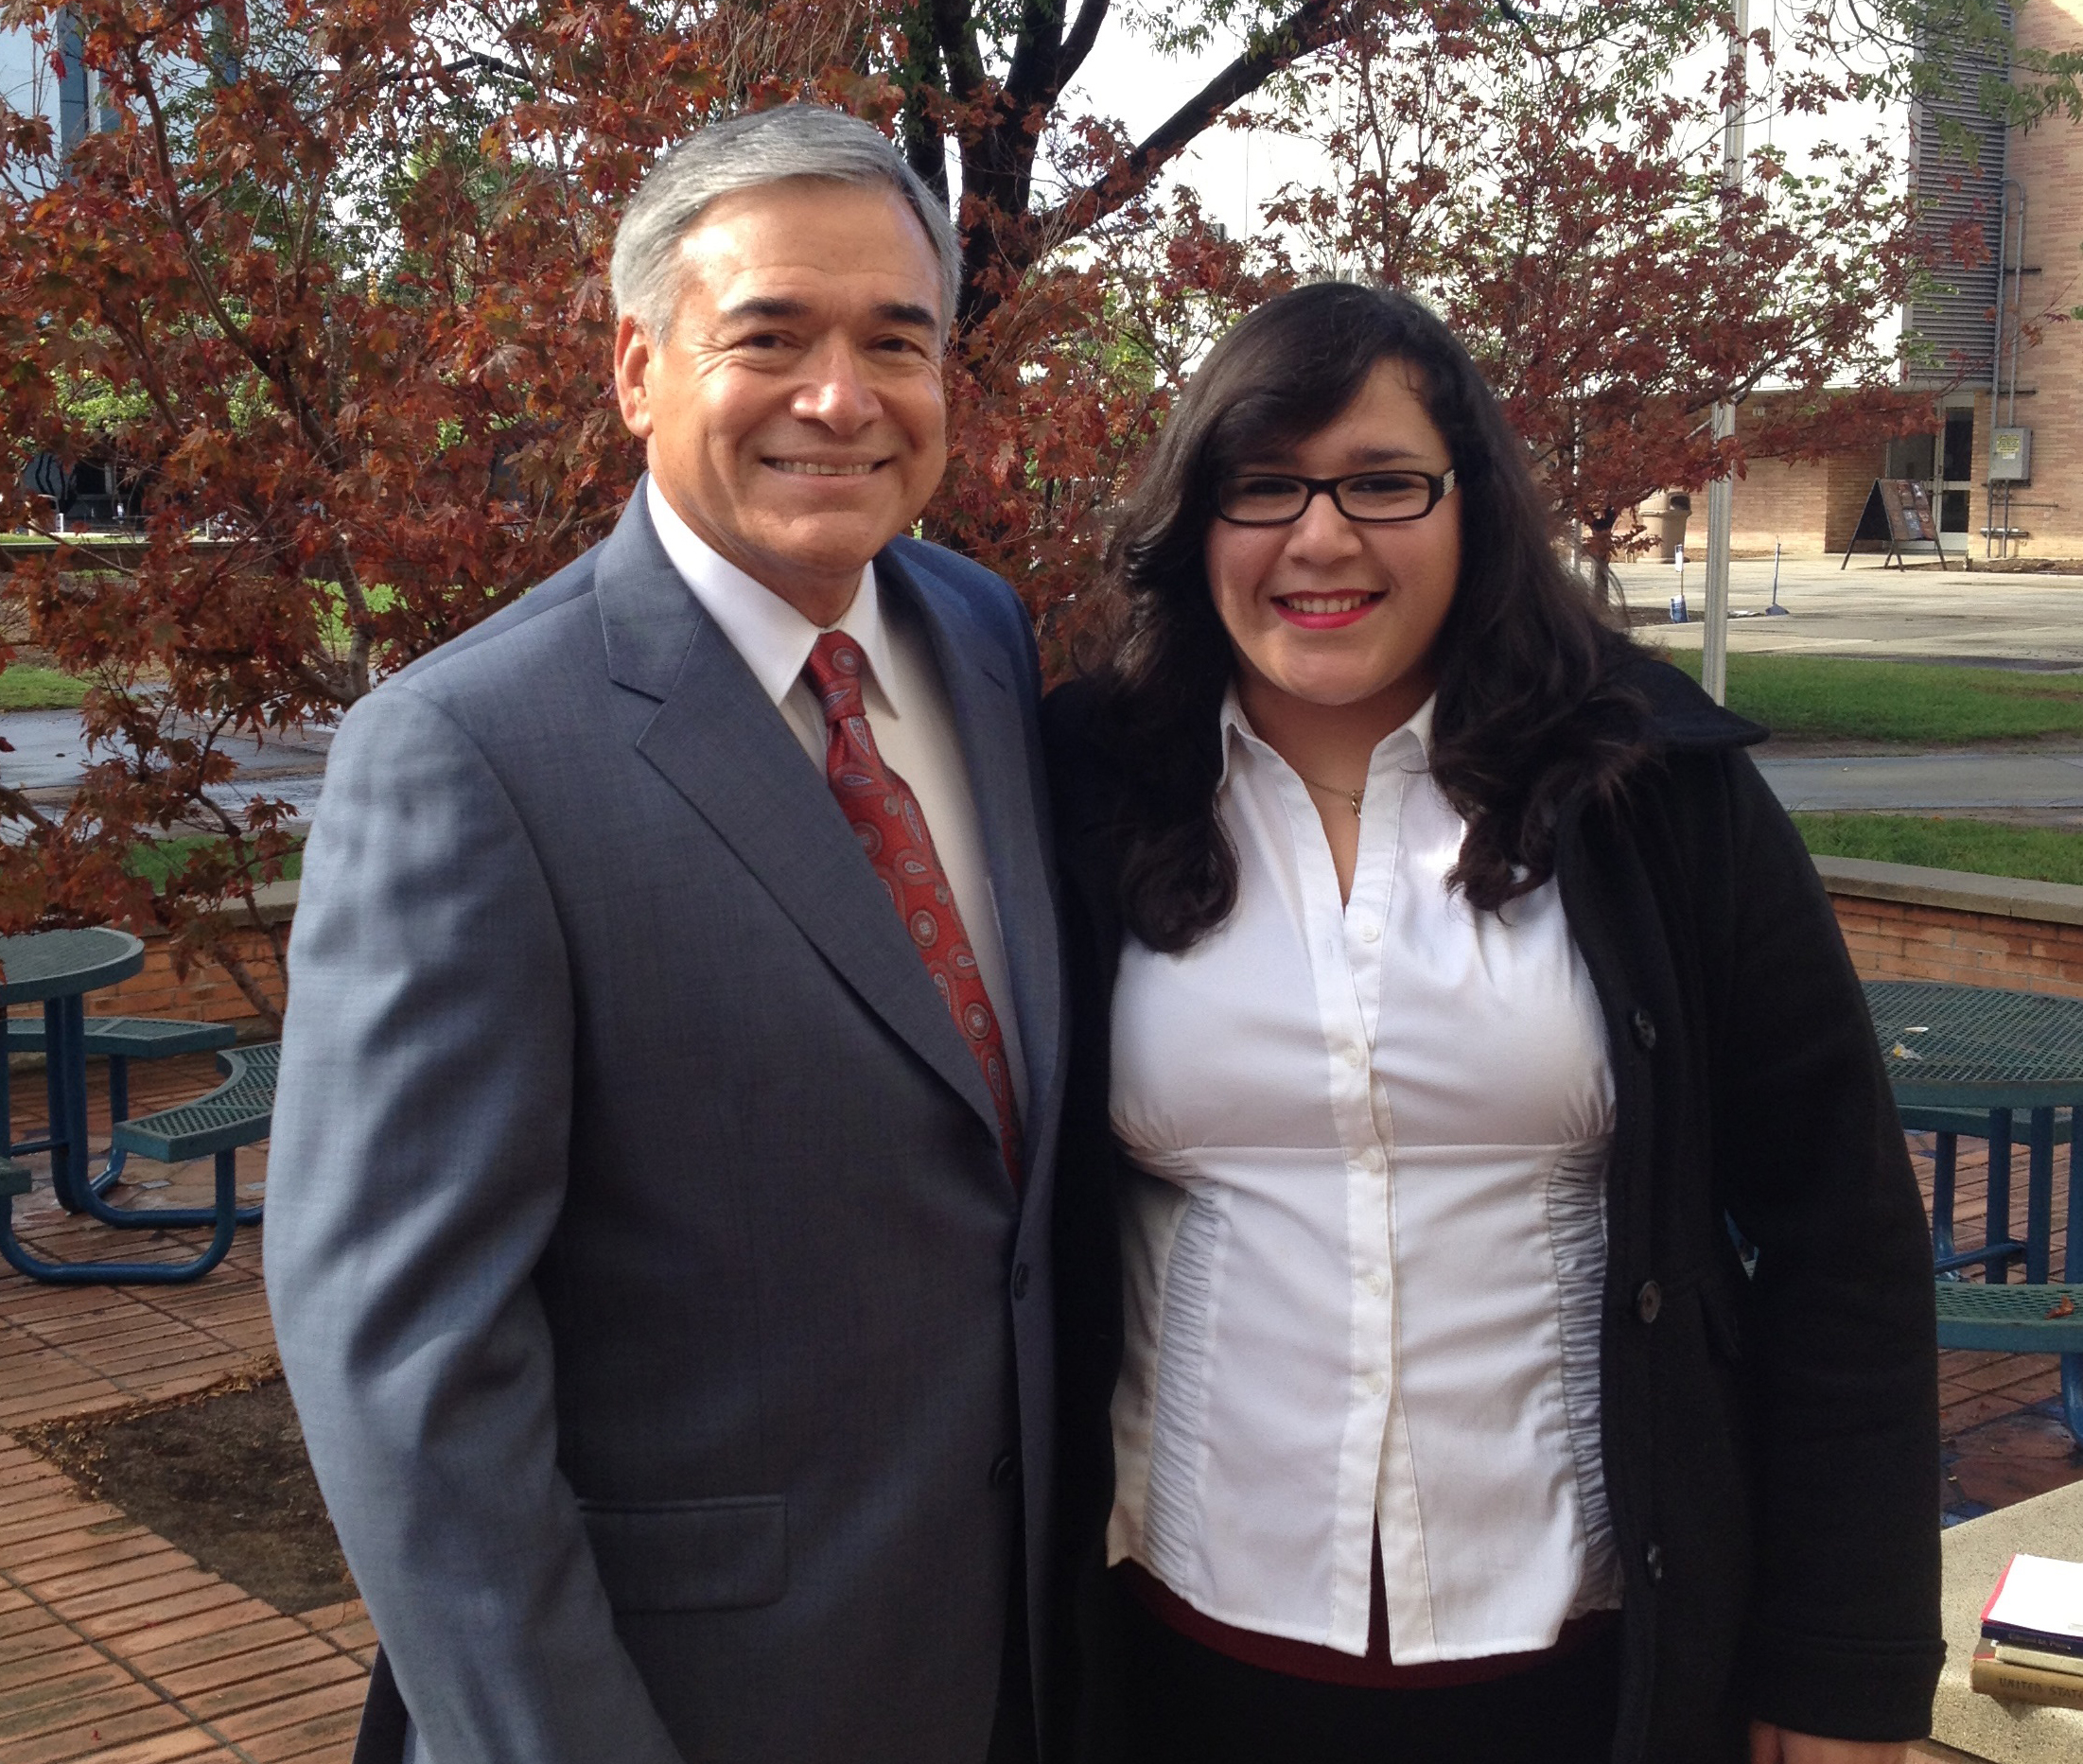 Natalie Navar and Joe Ocamp pose for LULAC project